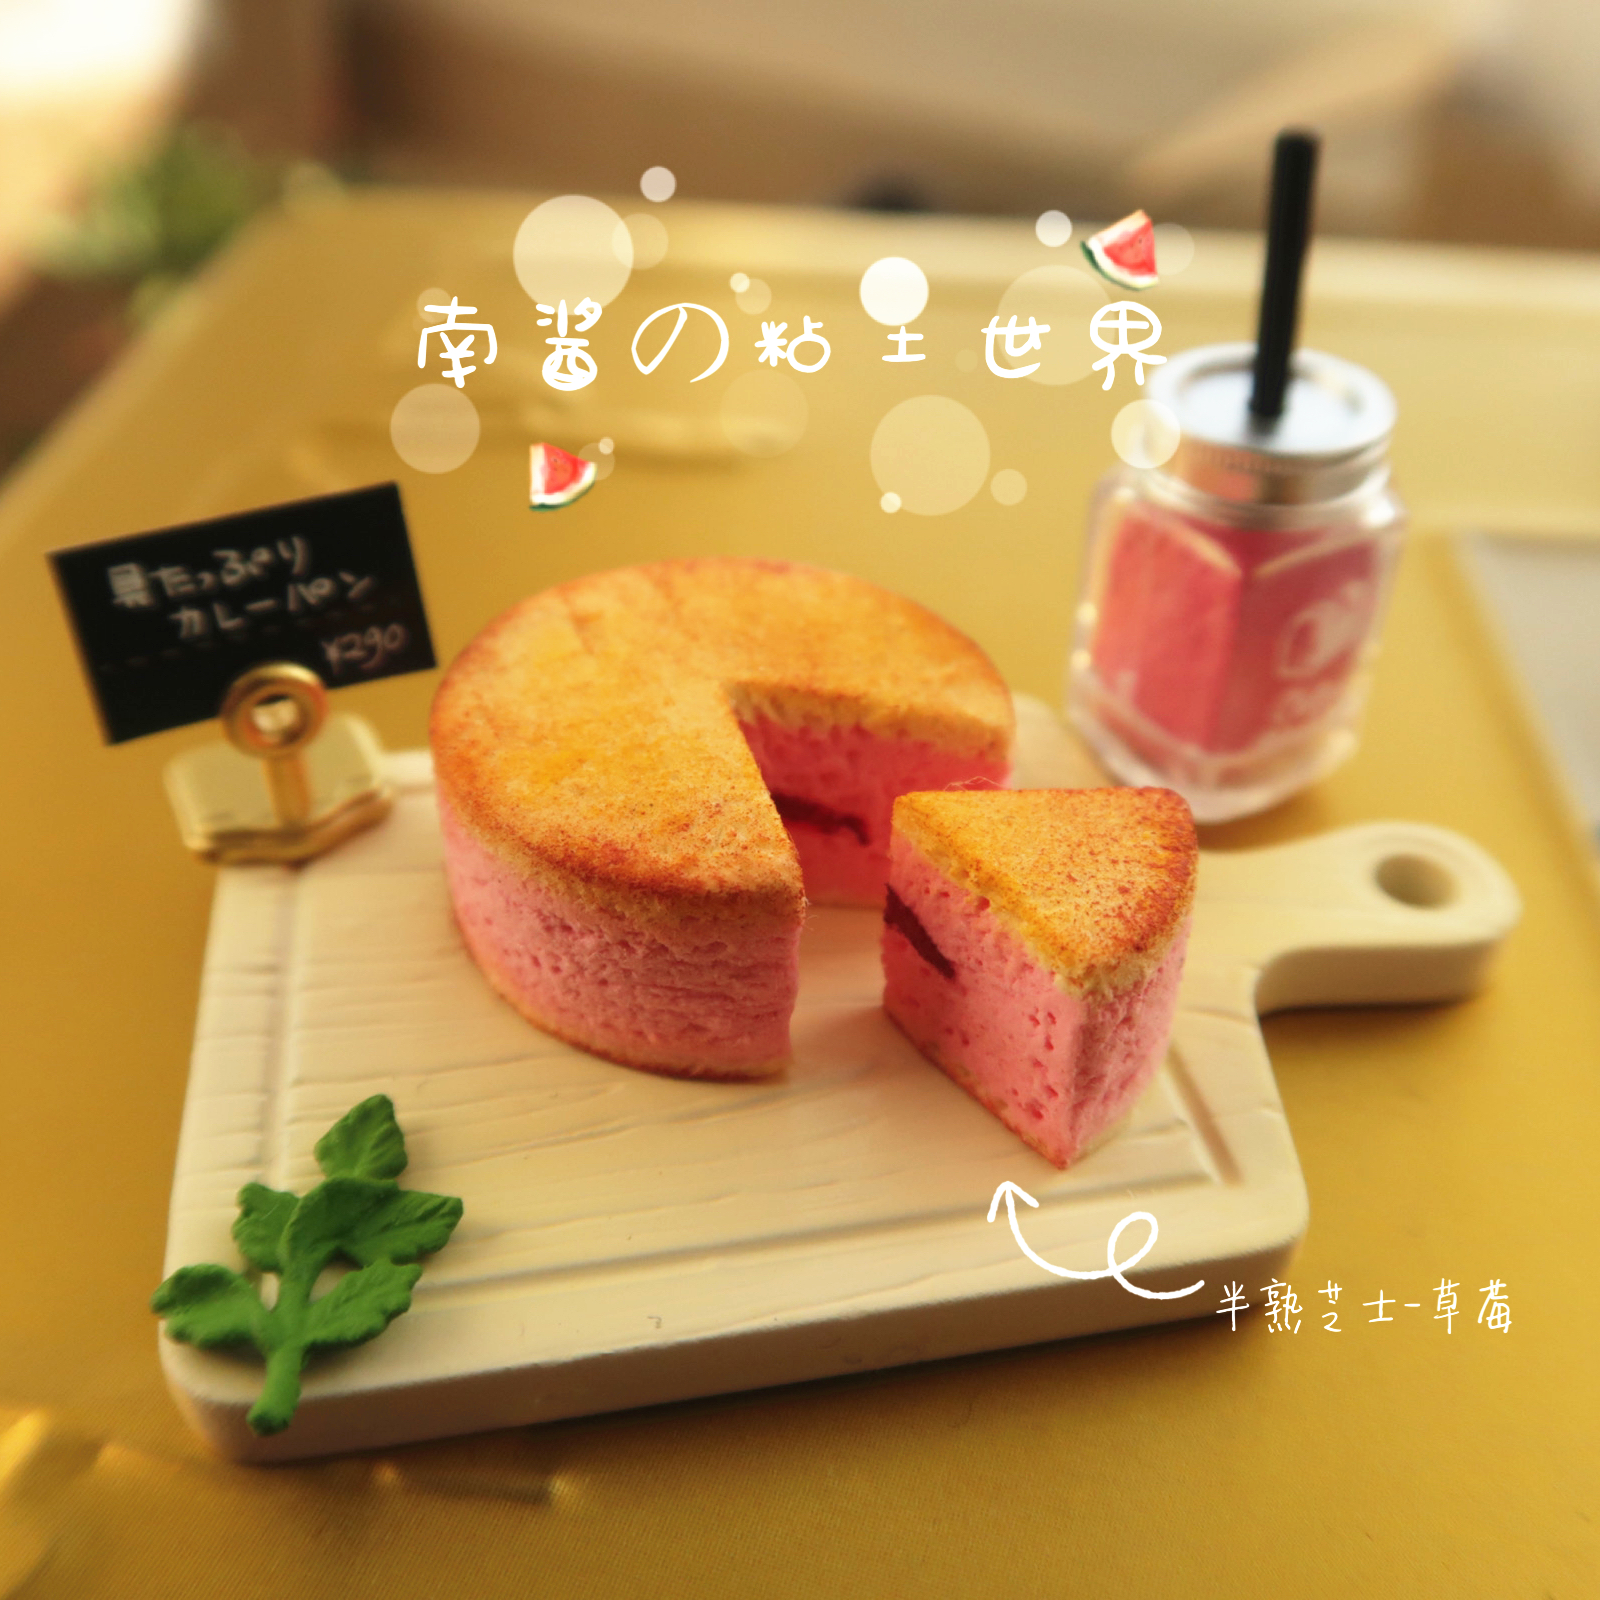 Miniature world food toy cheese cake ob11 Mini scene 12 point Baby House accessories BJD food model